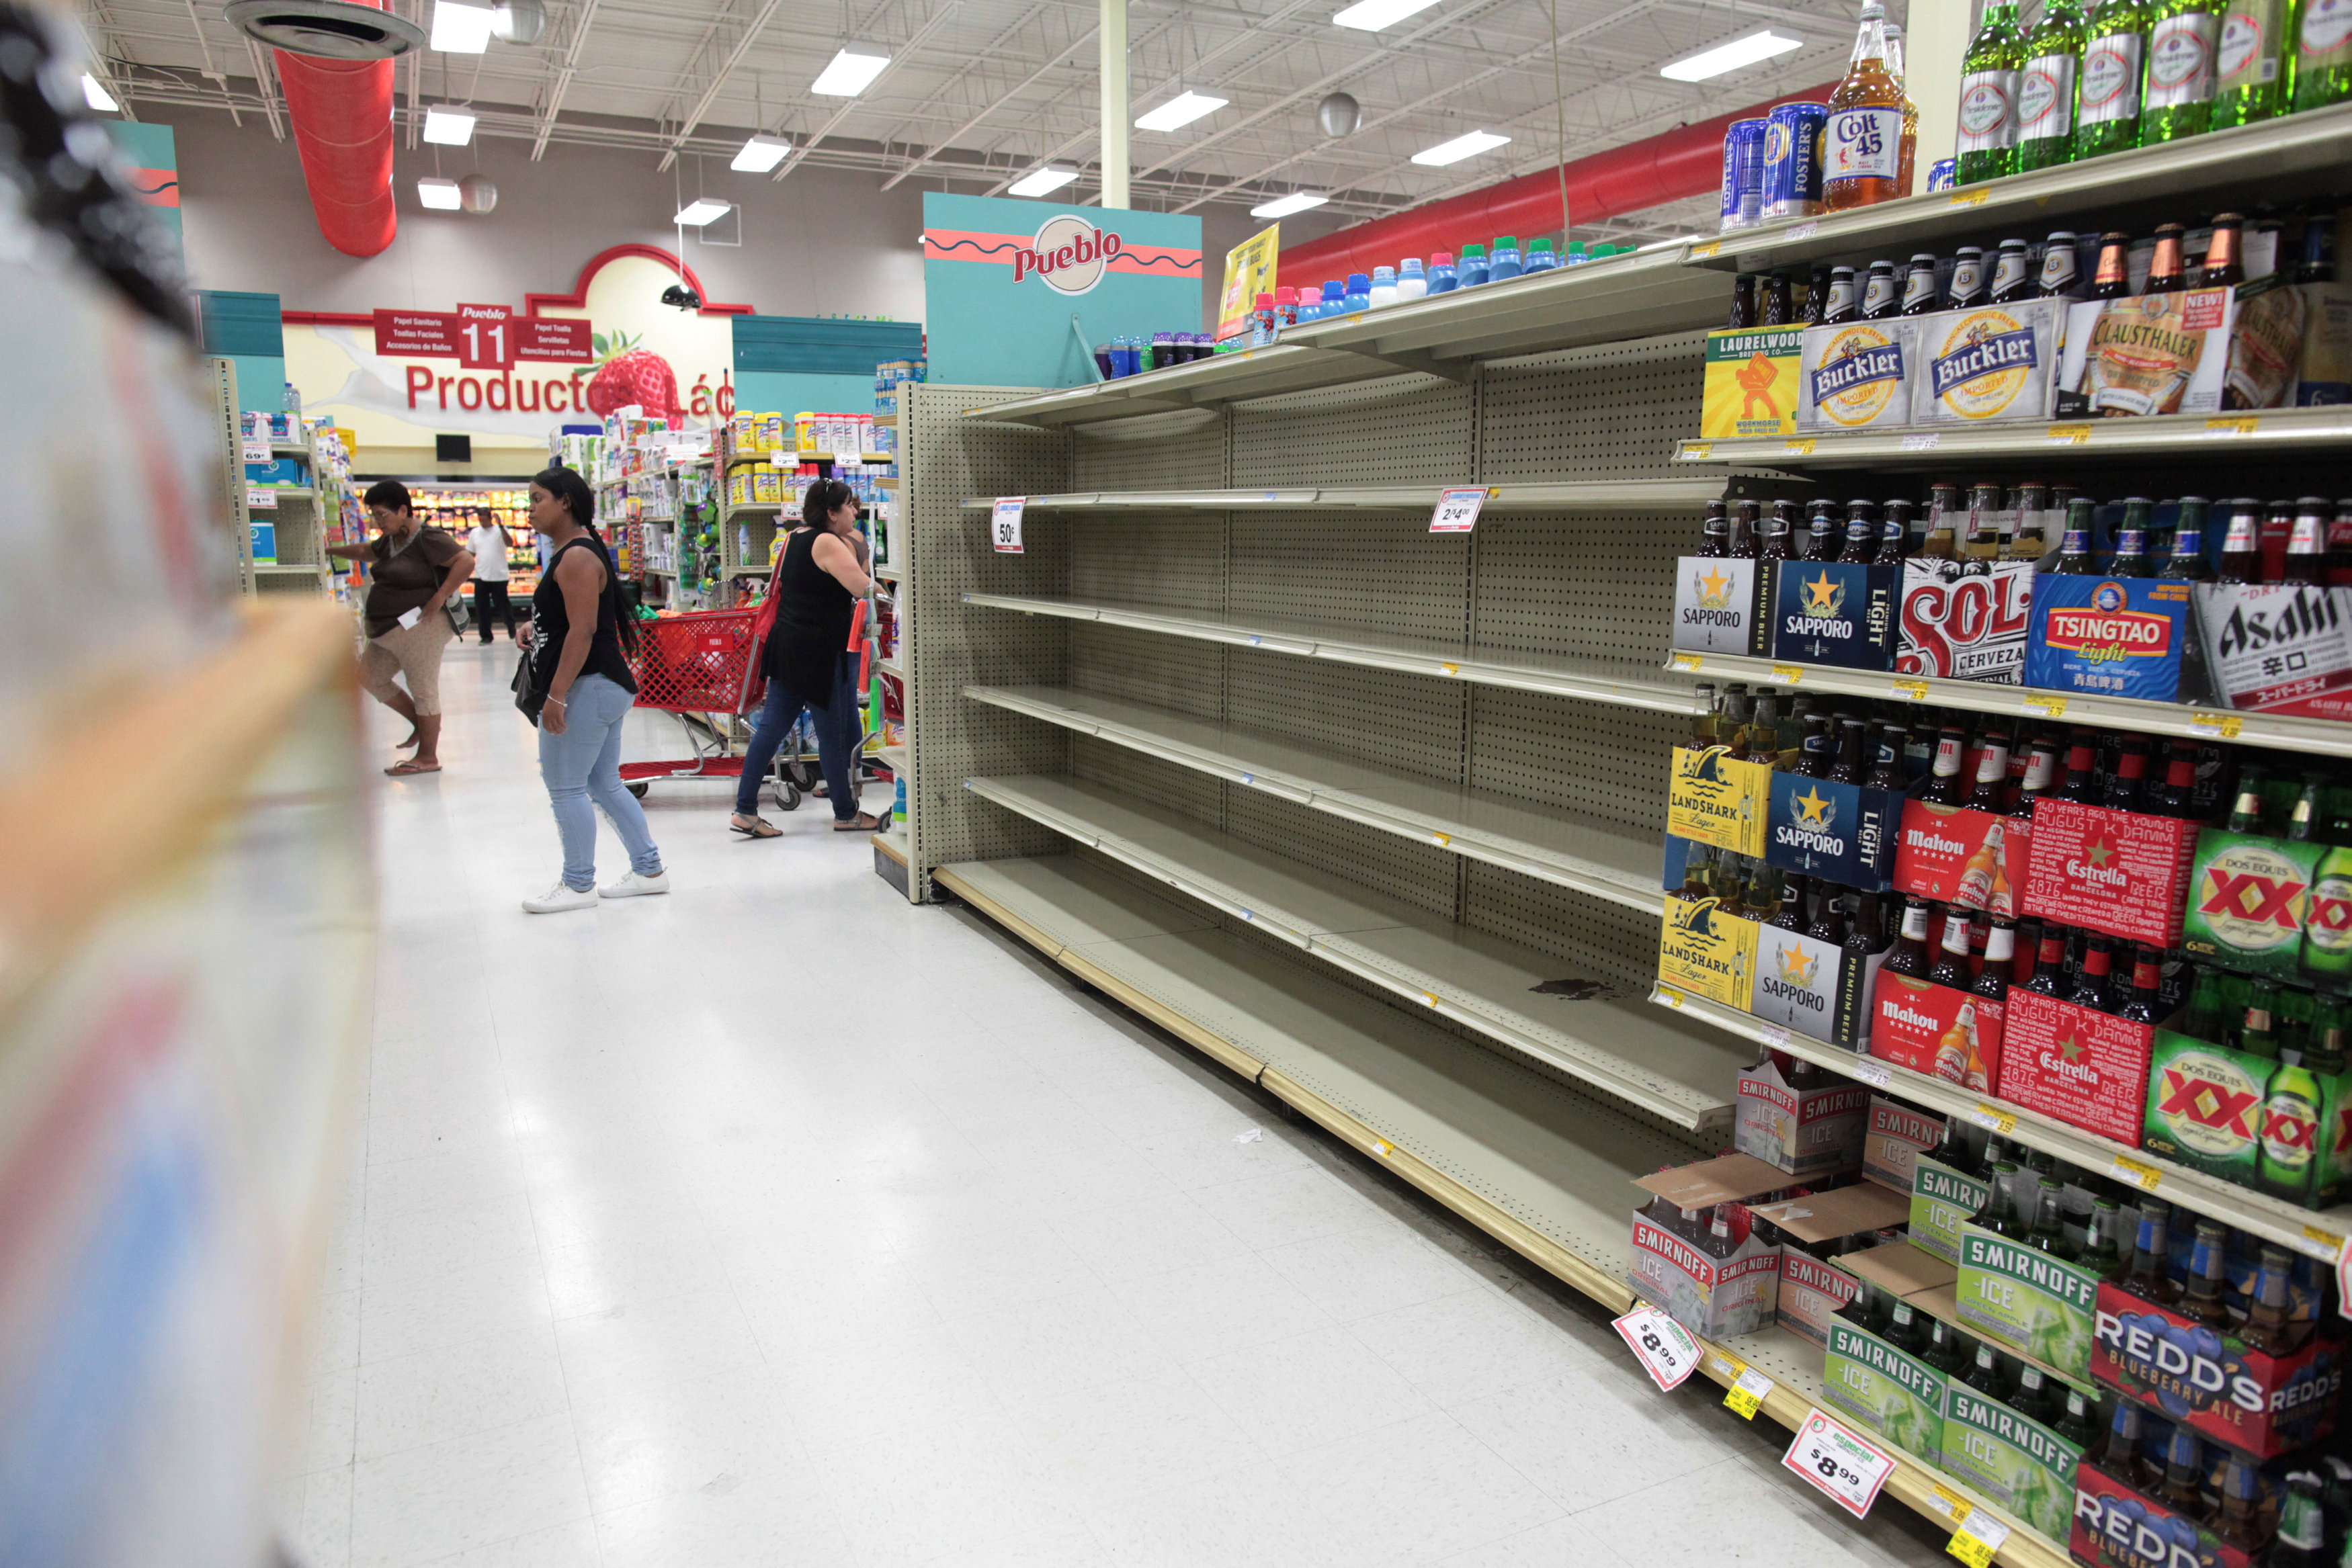 Customers walk near empty shelves that are normally filled with bottles of water after Puerto Rico Governor Ricardo Rossello declared a state of emergency in preparation for Hurricane Irma, in San Juan, Puerto Rico on Sept. 4, 2017. (REUTERS/Alvin Baez)